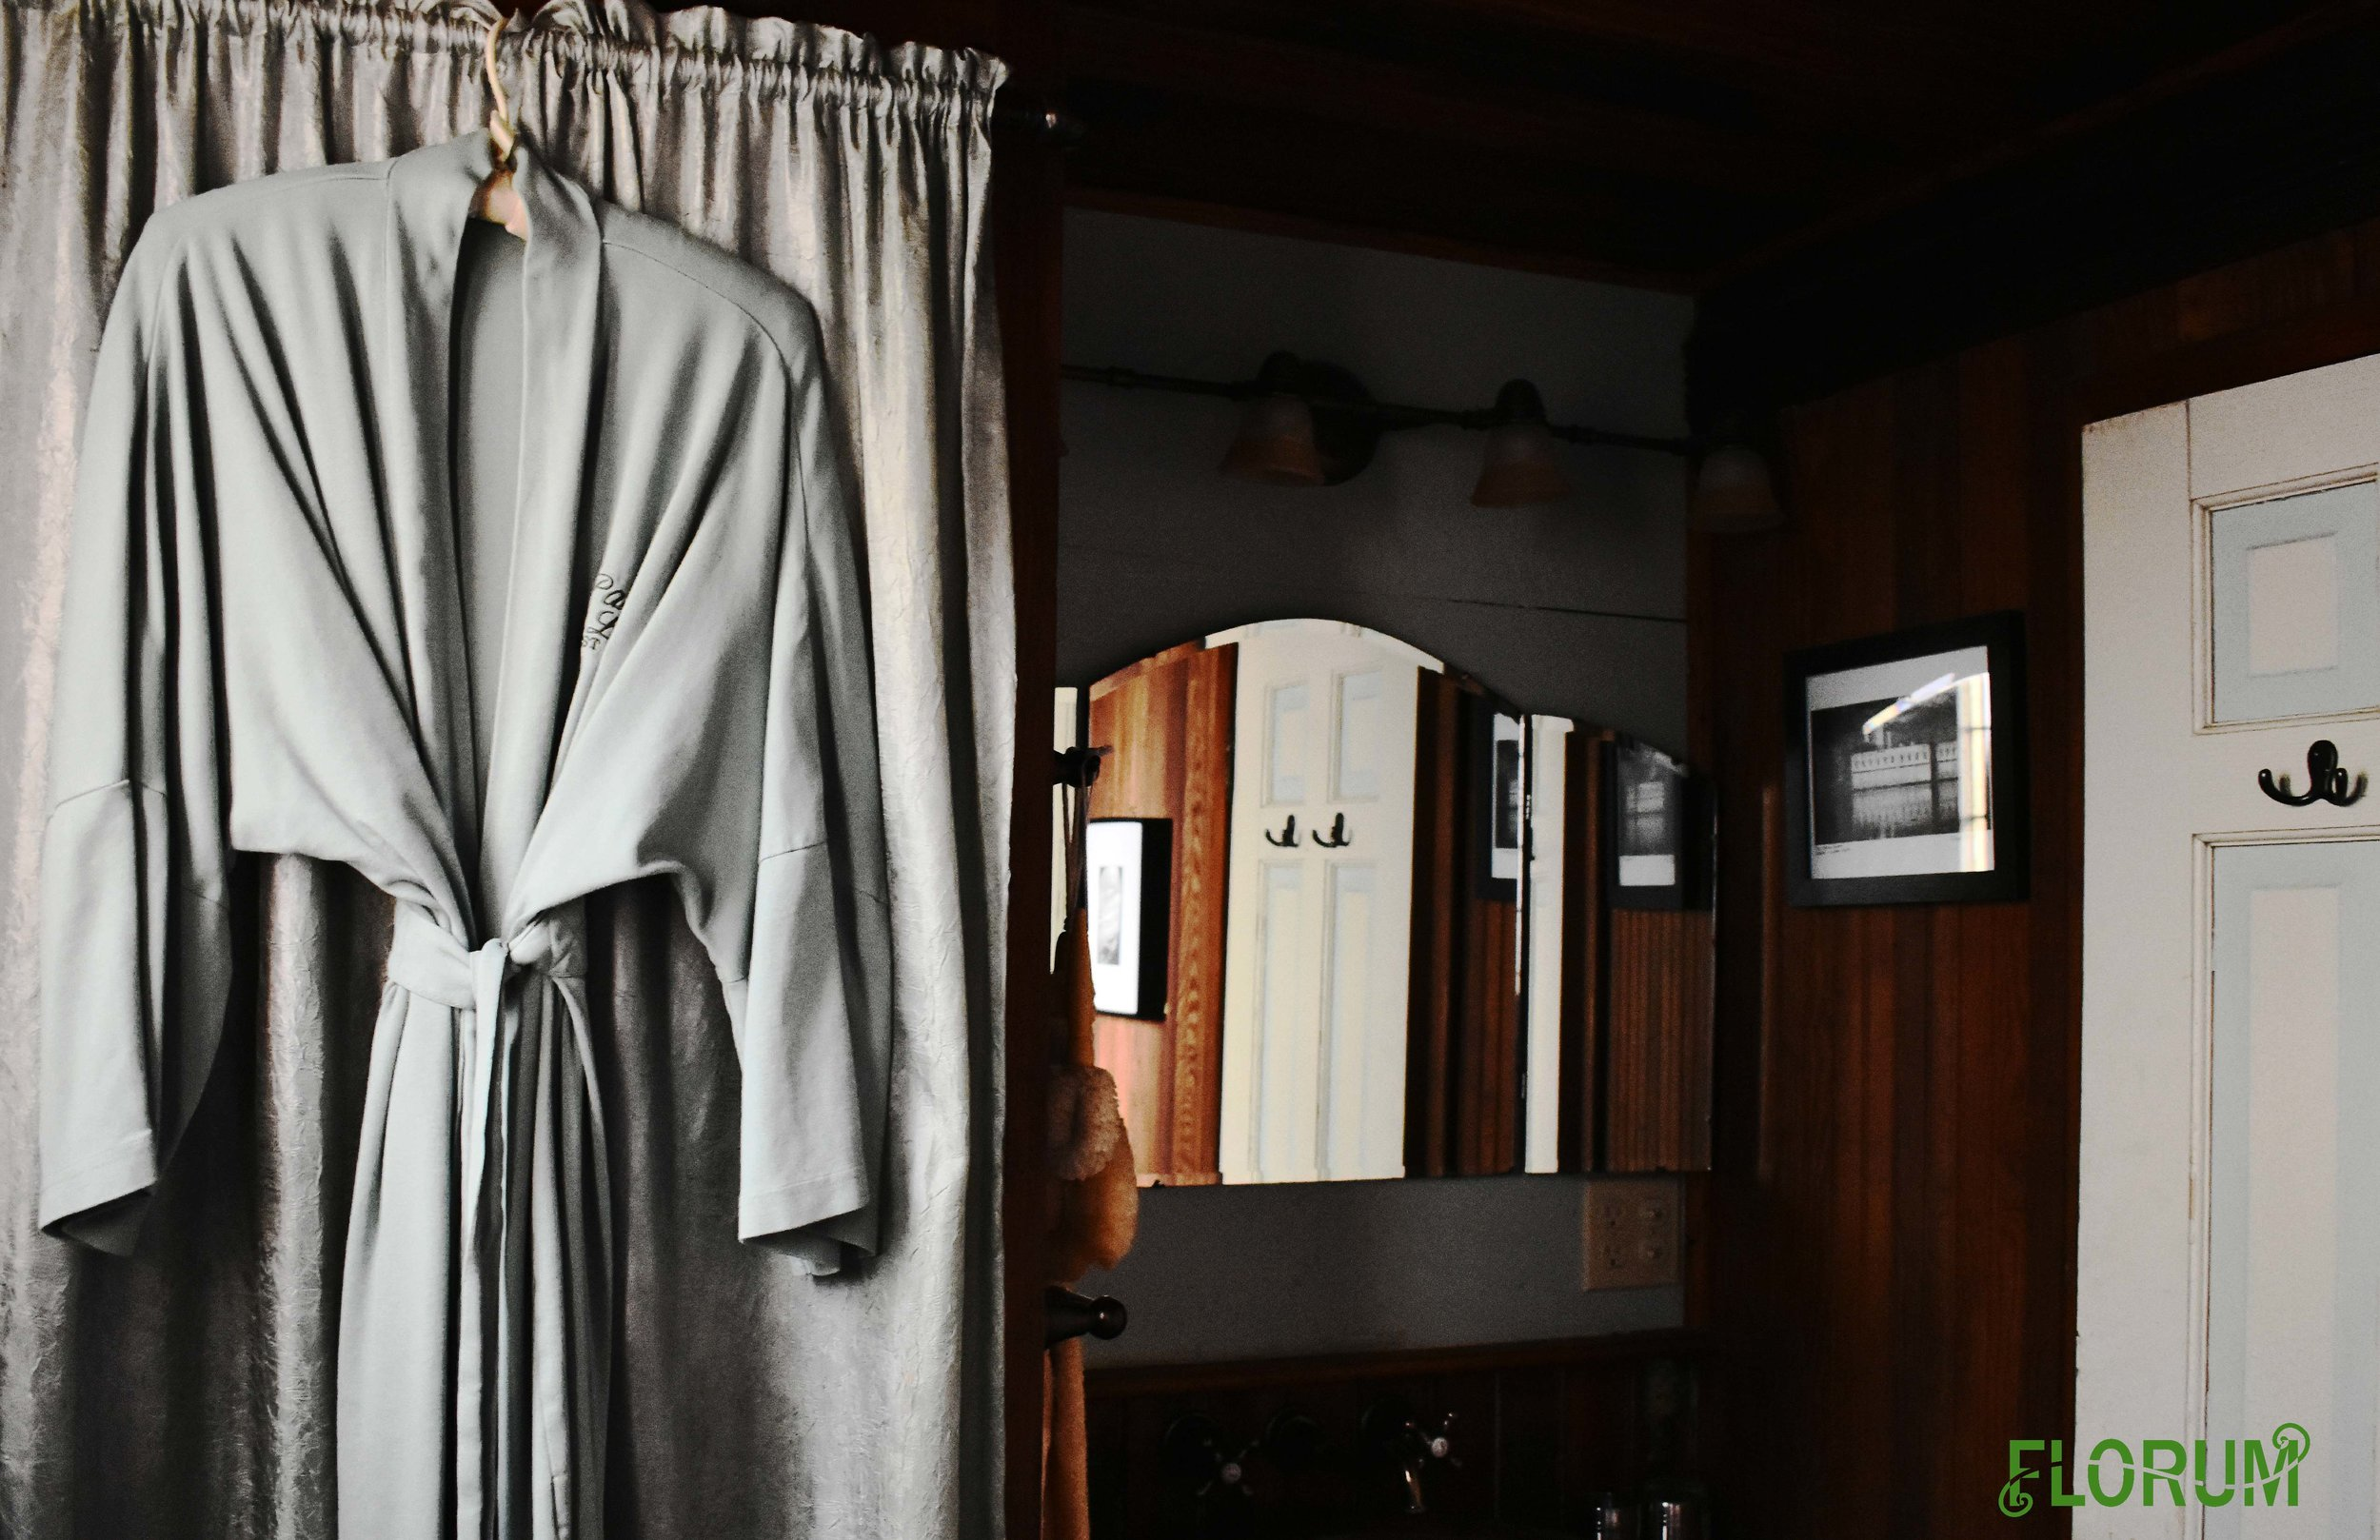 I absolutely loved the bathroom, while it was not the largest that I have found in a Bed and Breakfast, it included everything from a antique pedestal tub & shower to organic cotton robes.